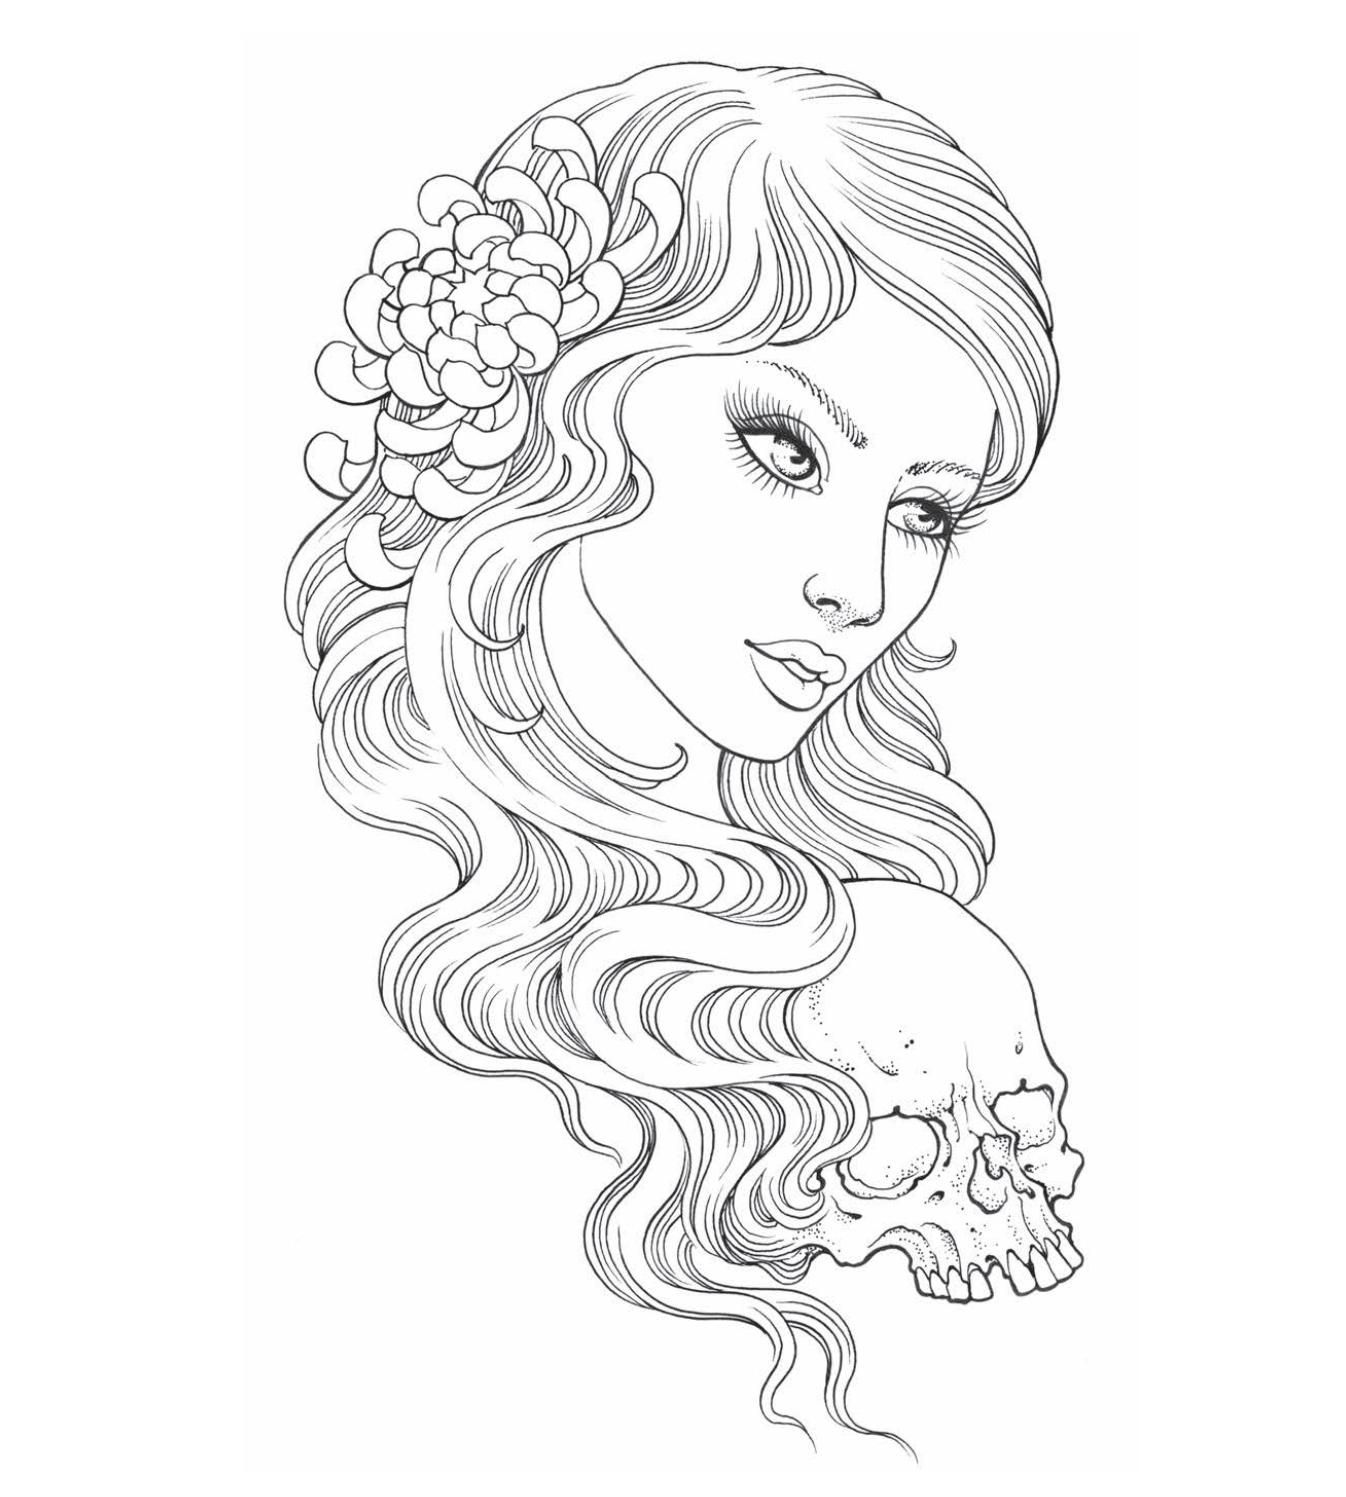 Flash Tattoo style, Adult coloring book pages, Colouring